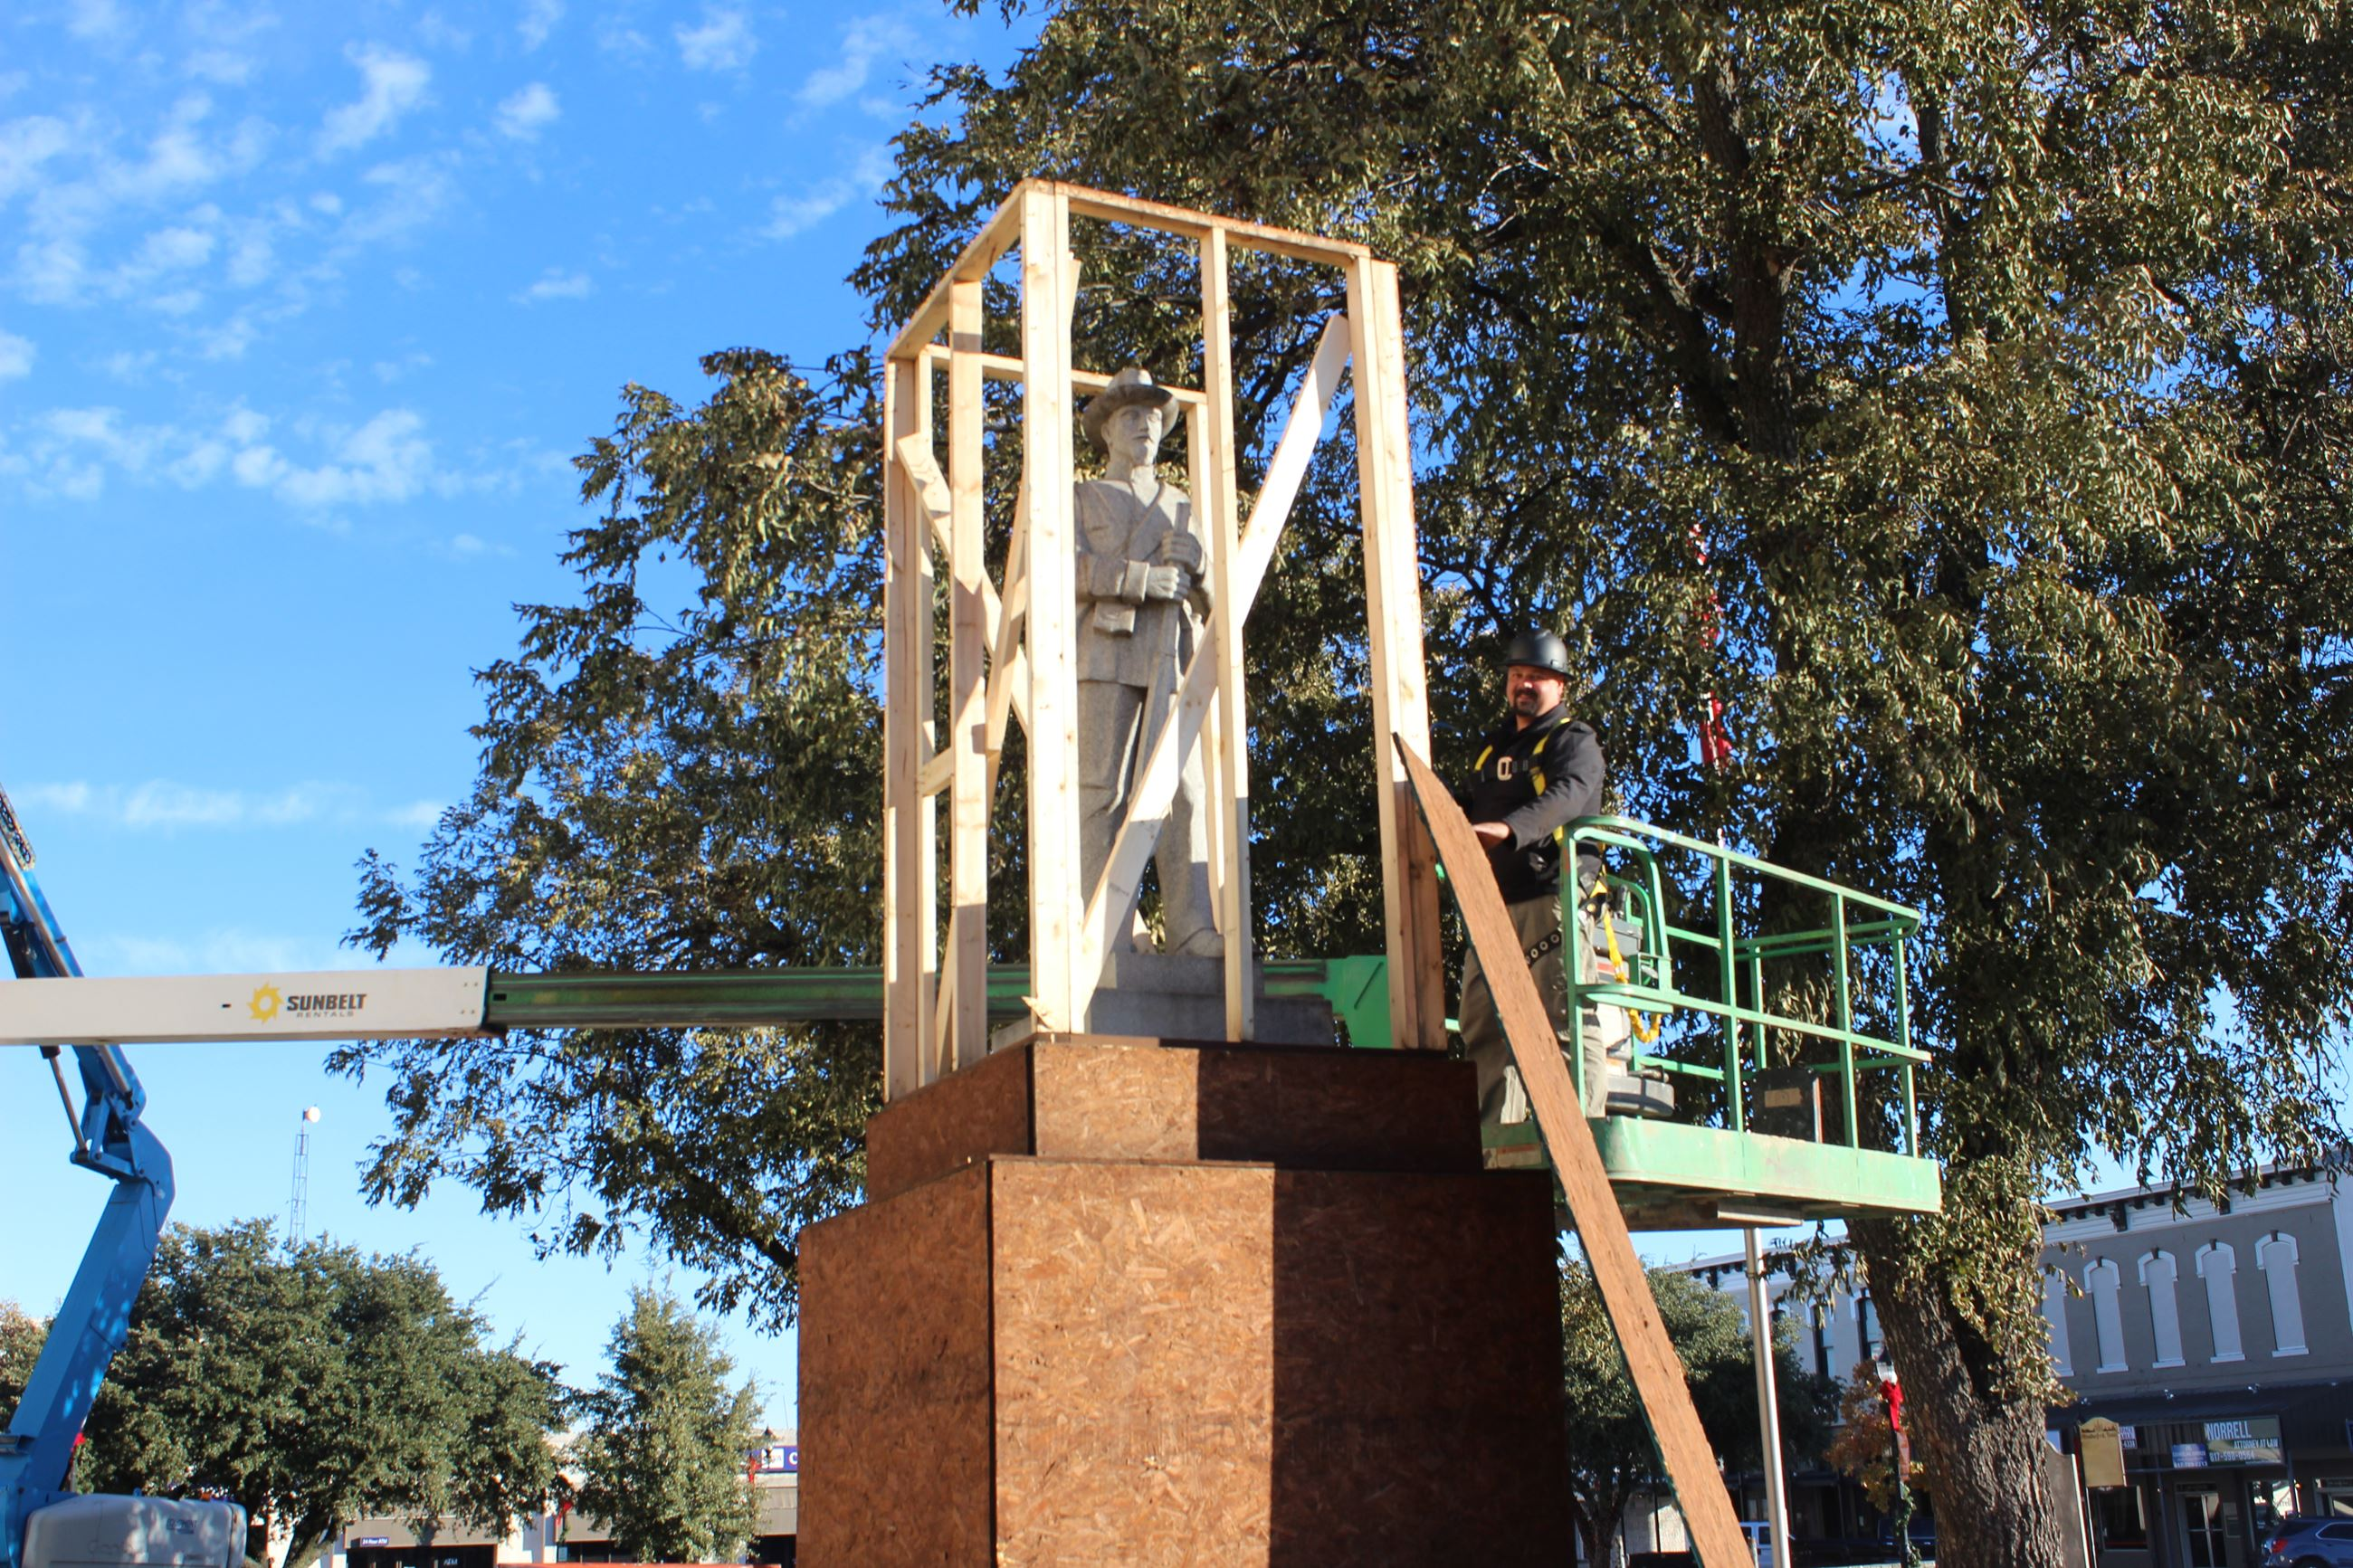 Image of Parker County&#39s Courthouse Monument Being Unvieled after being covered for protective me